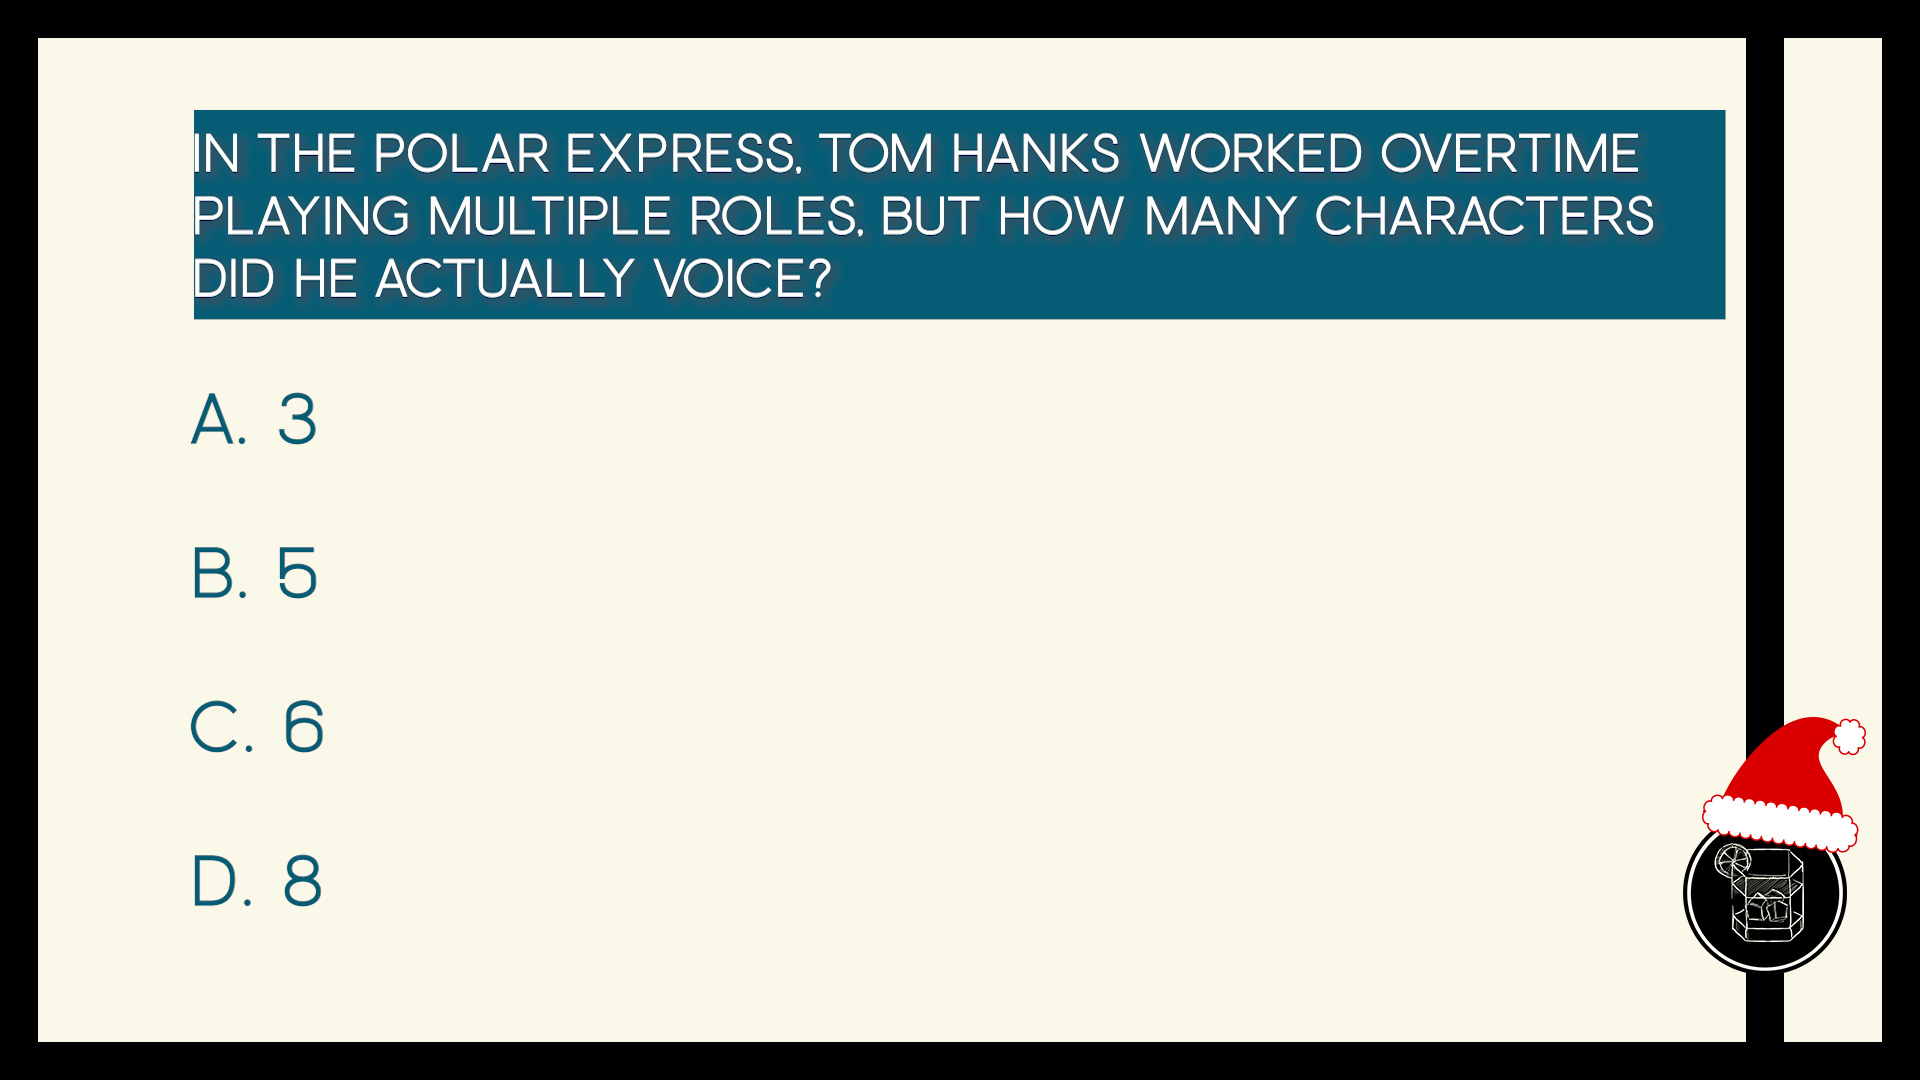 In The Polar Express, Tom Hanks worked overtime playing multiple roles, but how many characters did he actually voice?